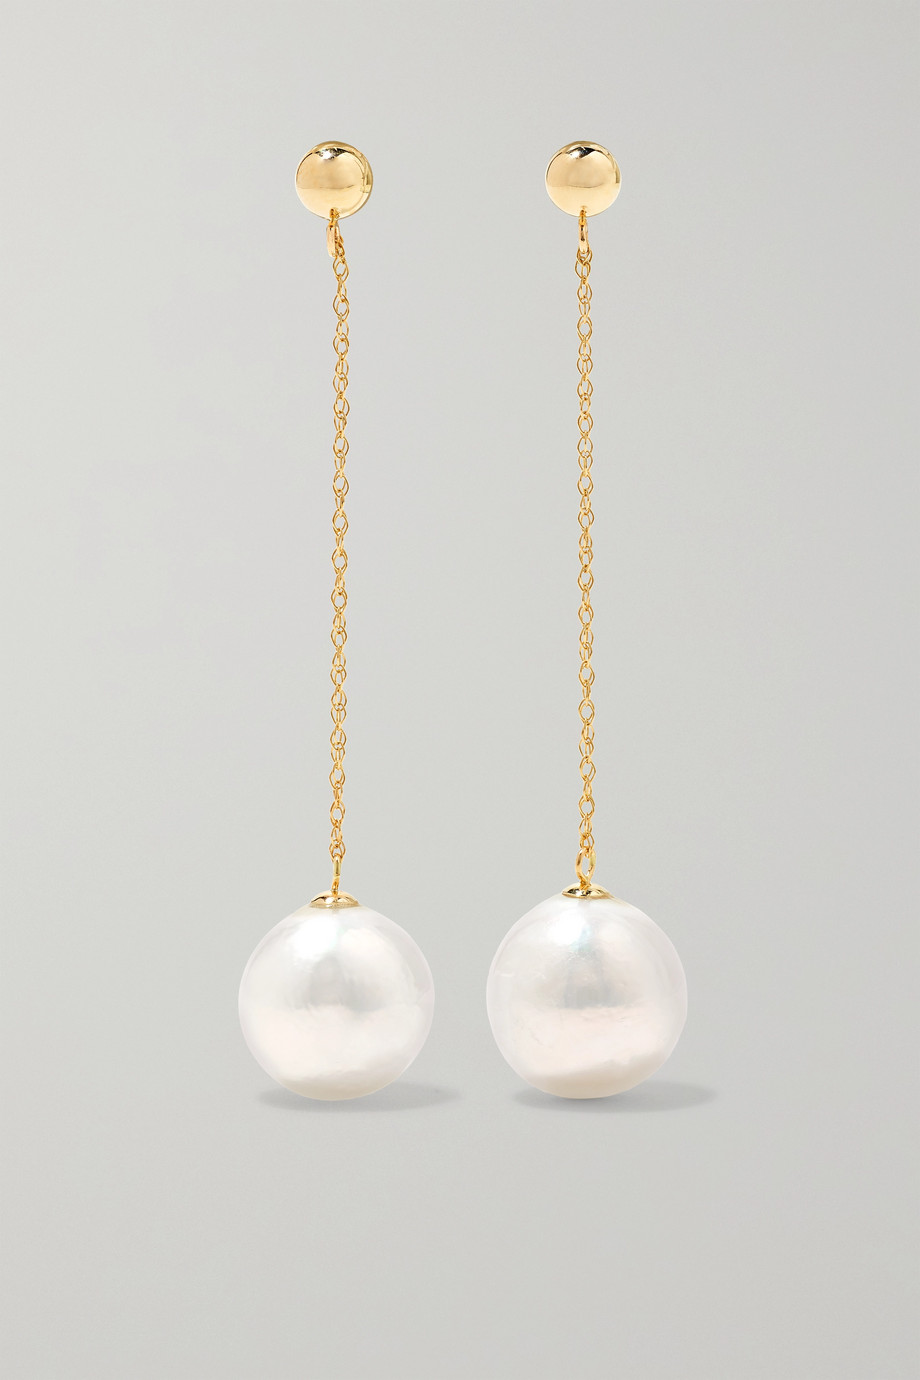 Anissa Kermiche Girl with a Pearl 14-karat gold pearl earrings